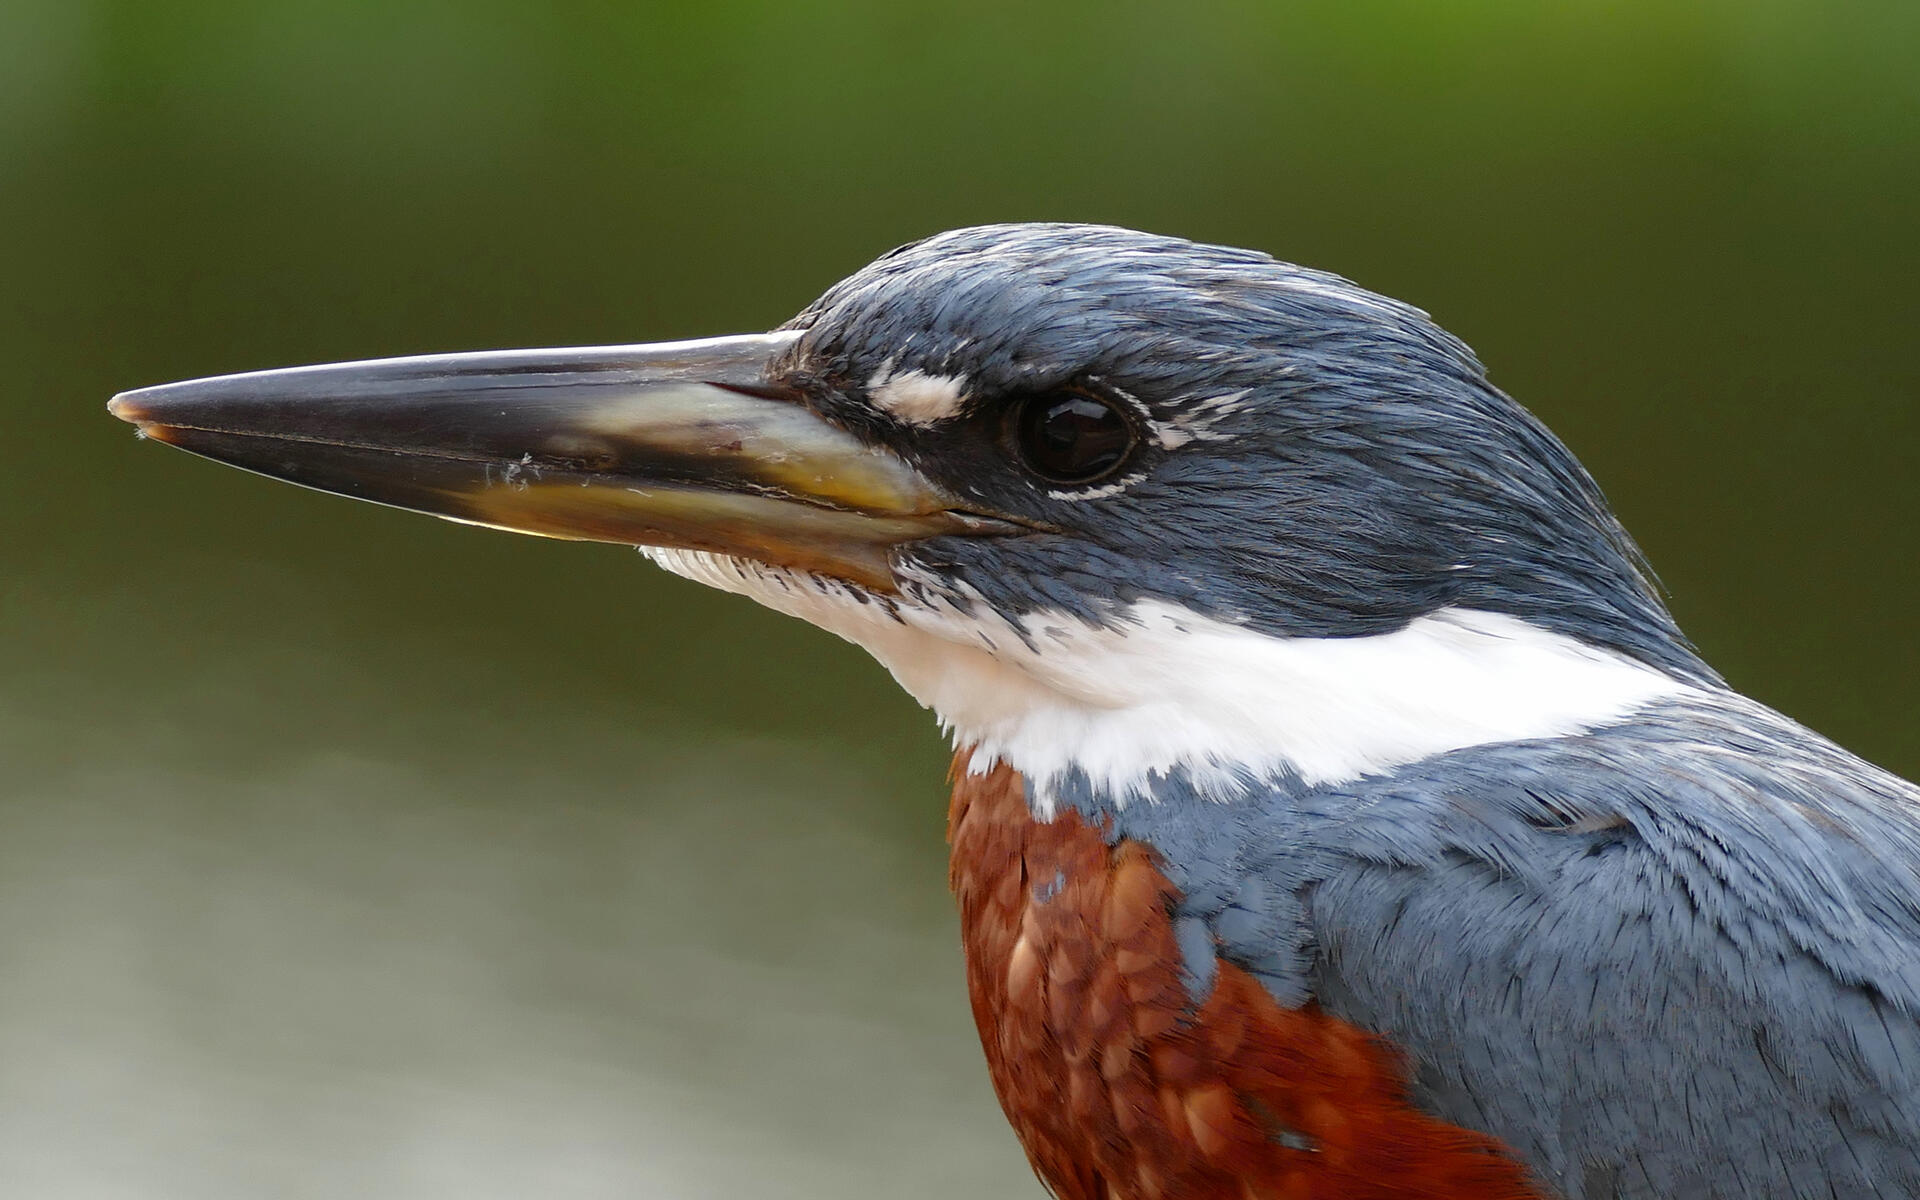 Ringed Kingfisher Audubon Field Guide